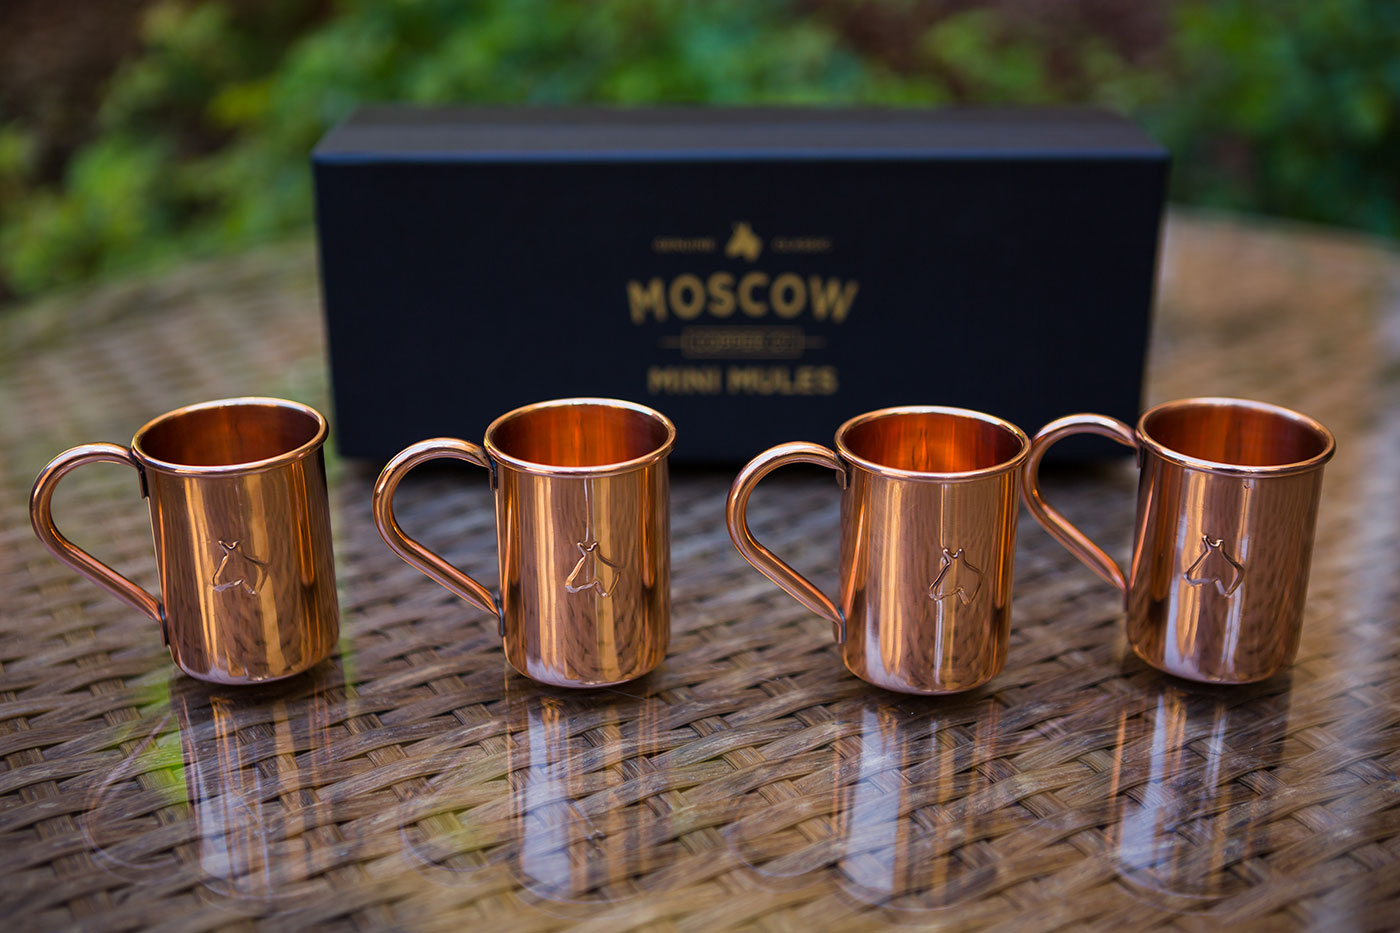 moscow-copper-co-women-of-the-vine-1-meritage-resort